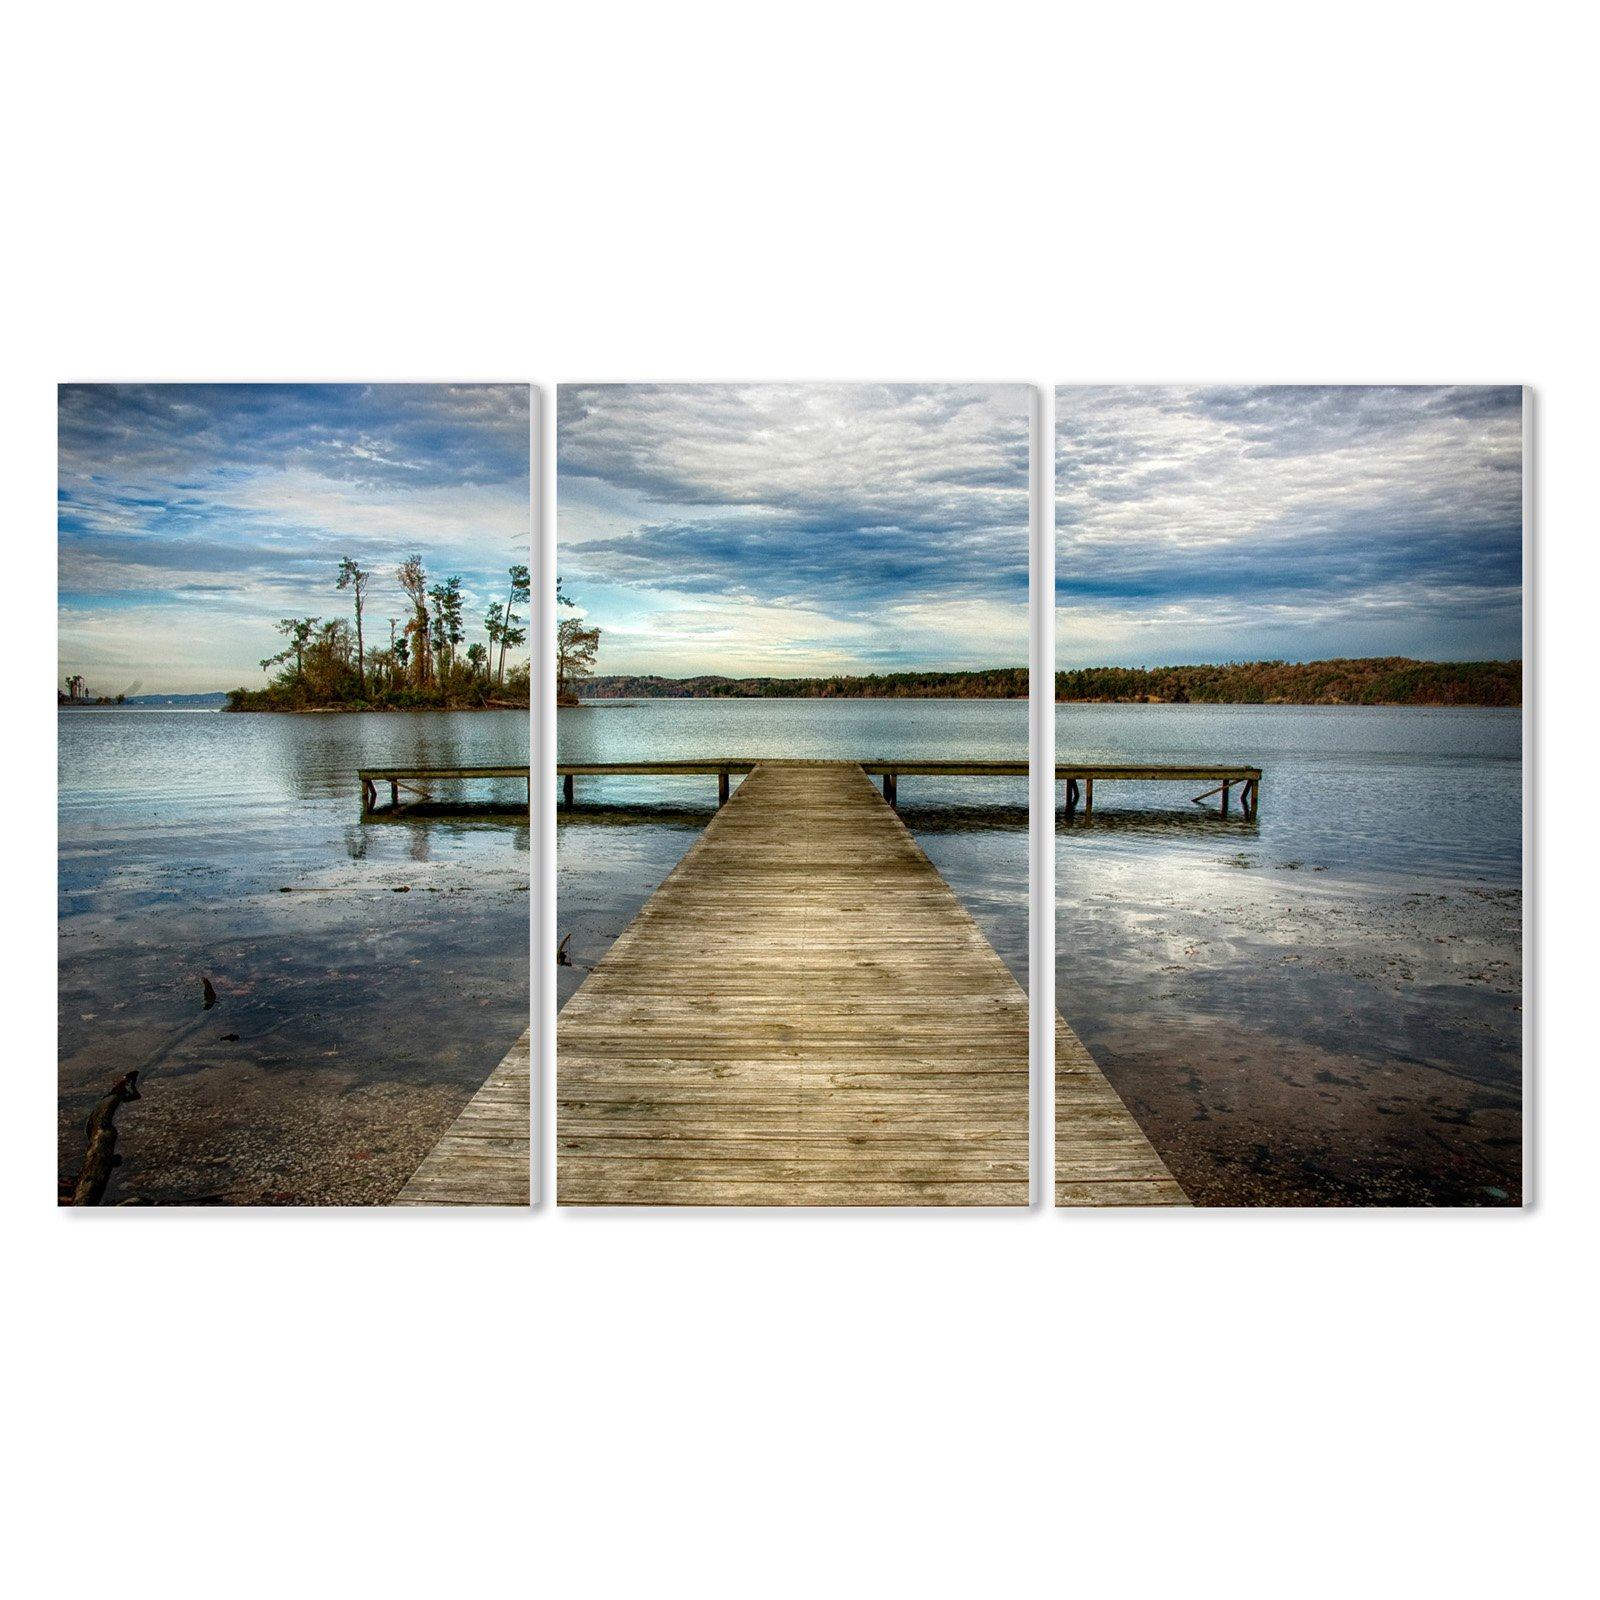 The Stupell Home Decor Collection Dock Overlooking Island Wall Plaque - Set of 3